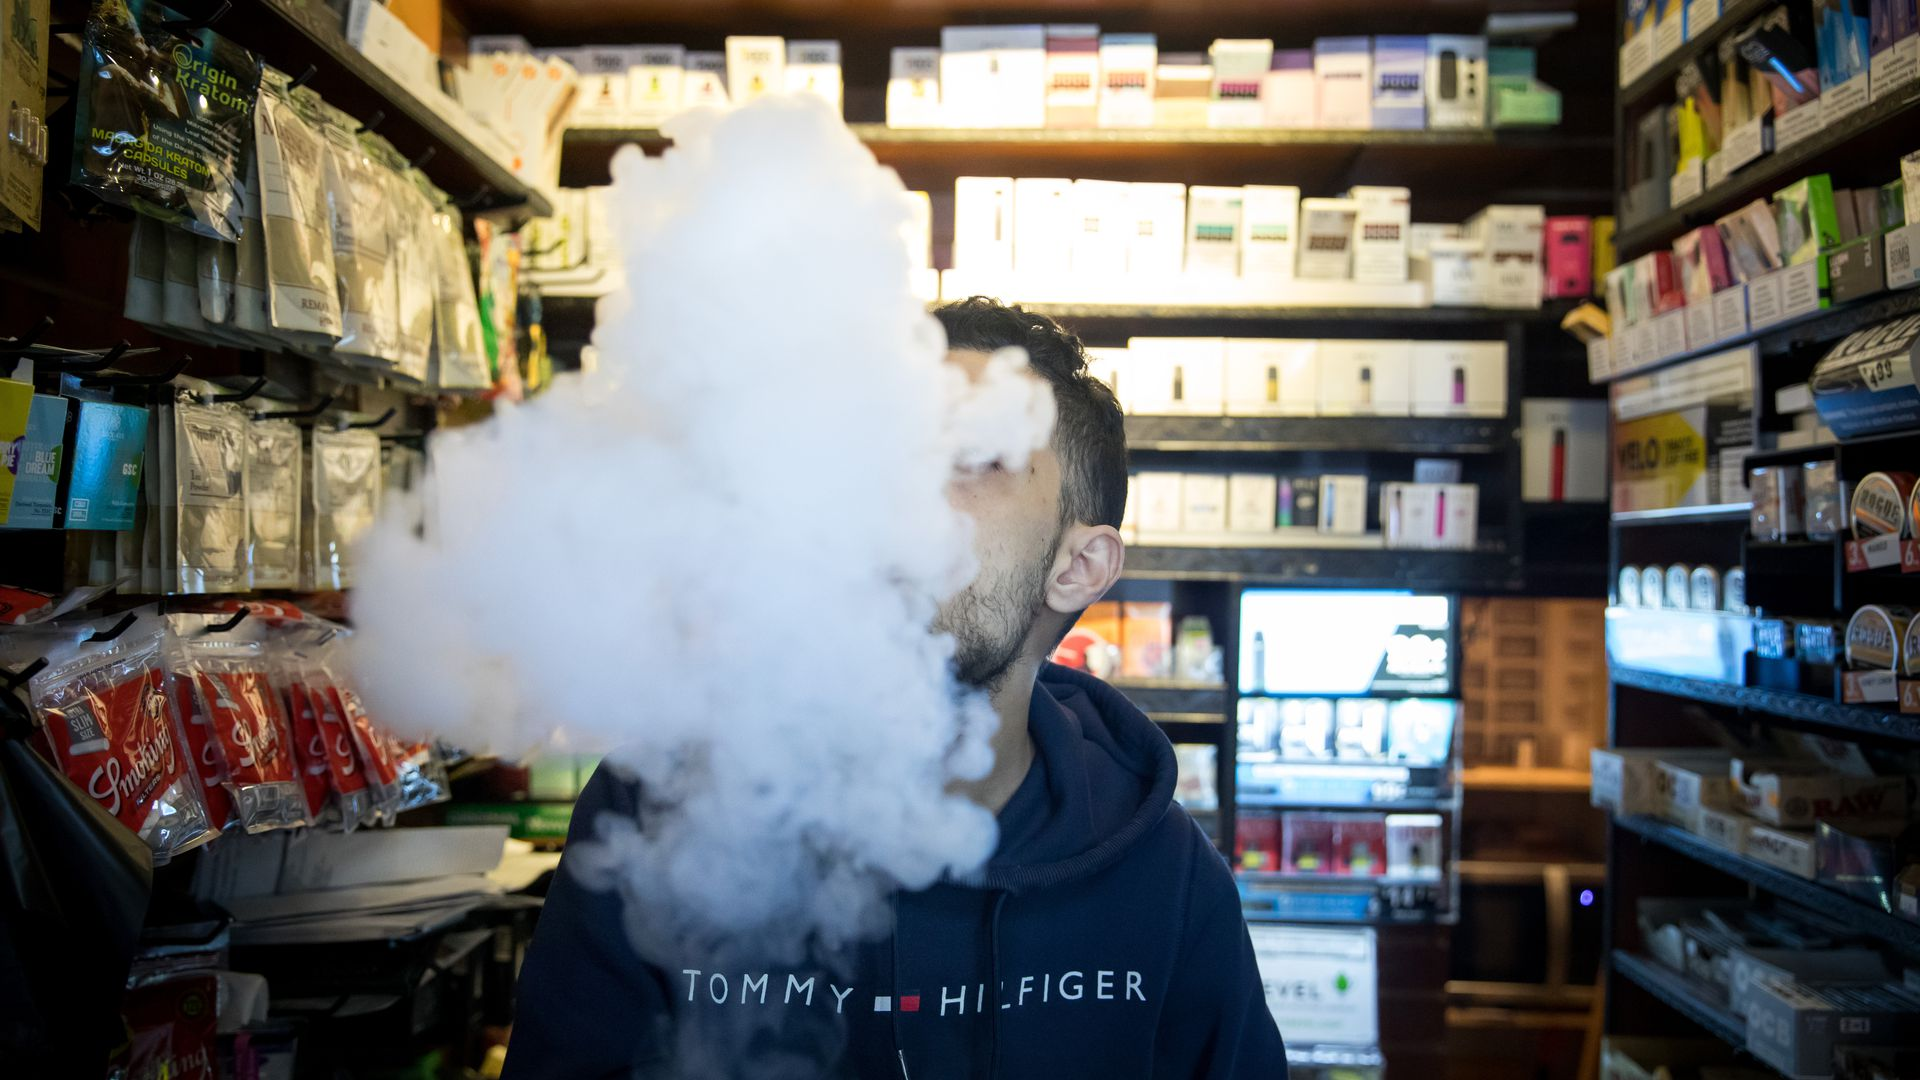 A photo of a person exhaling vapor while using an electronic cigarette device at a smoke shop